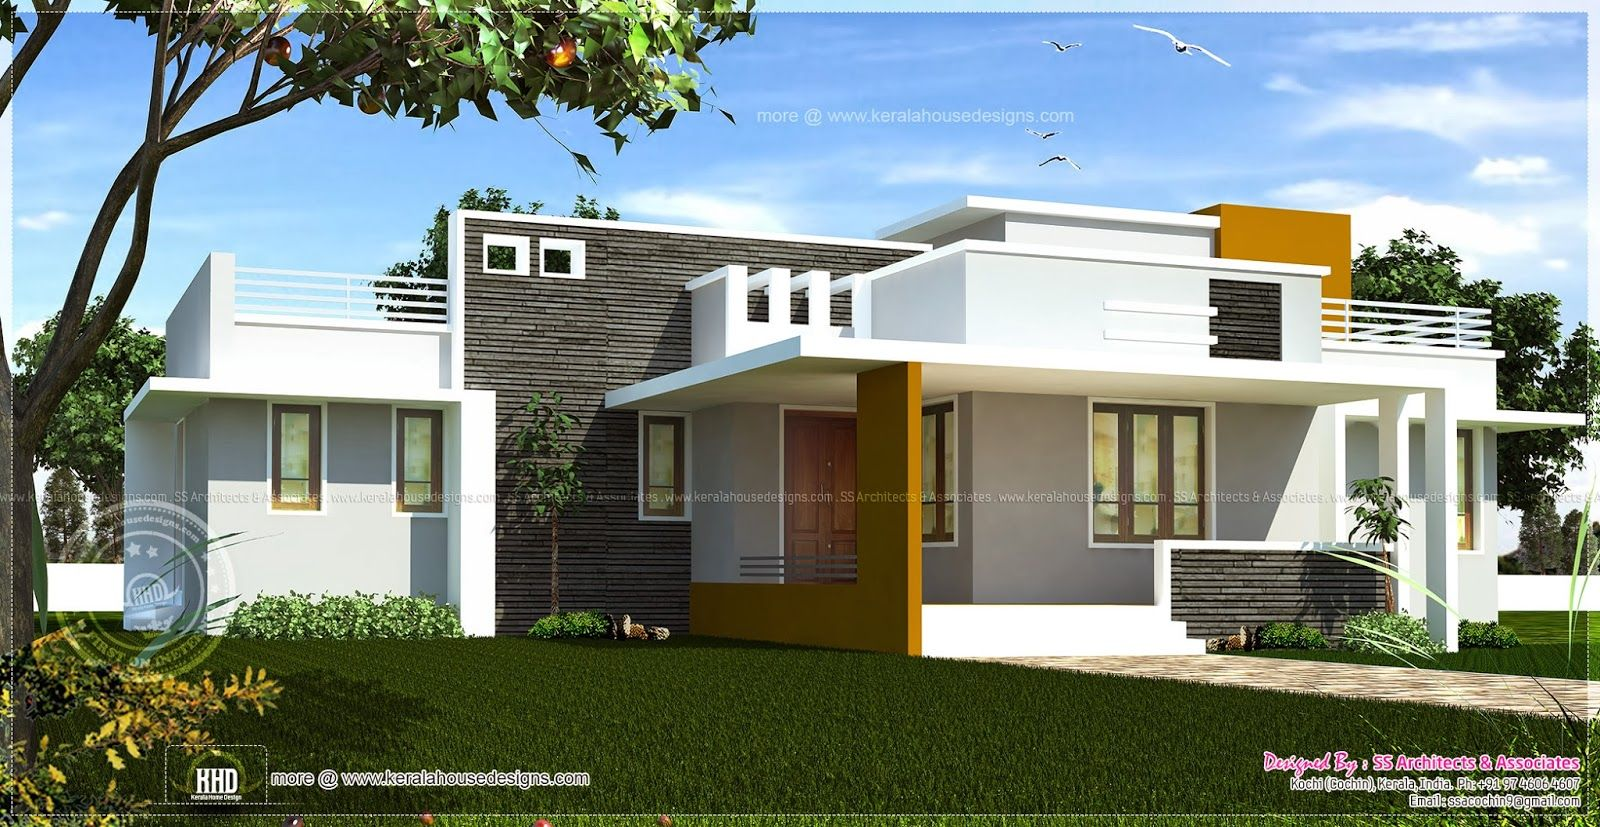 Excellent single home designs single floor contemporary for Contemporary home elevations